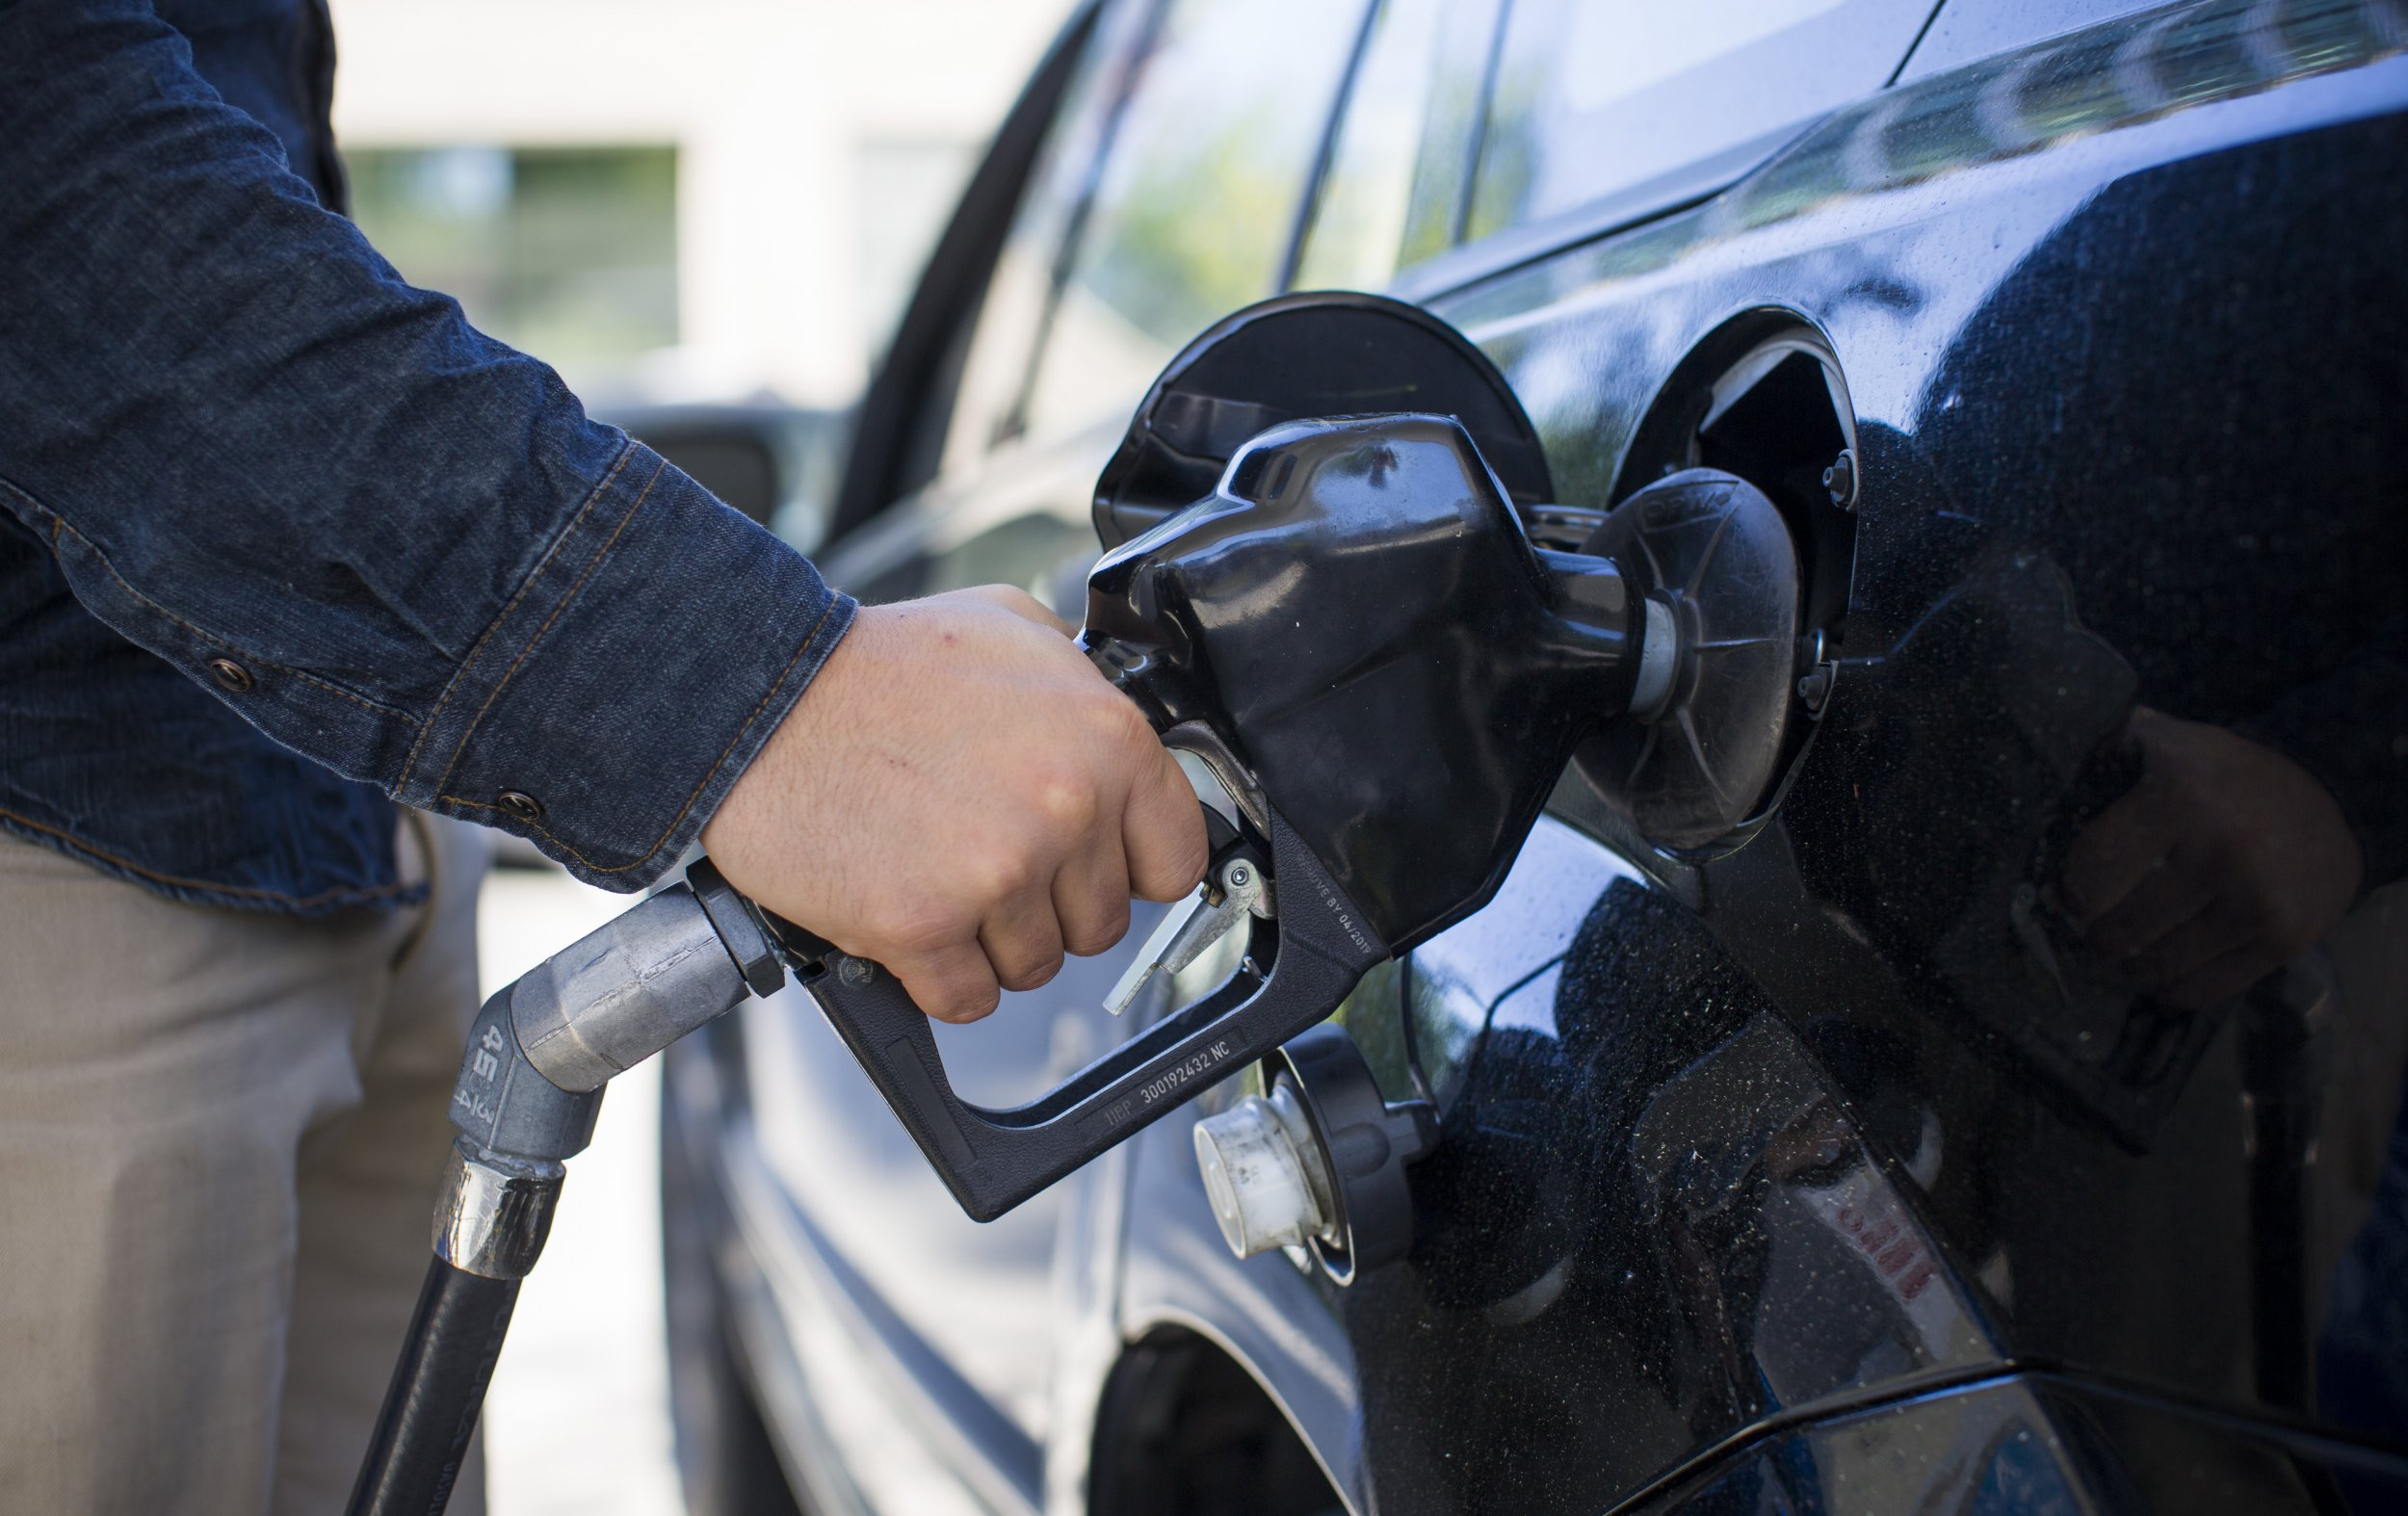 A man fills a car with fuel at an Esso gas station in Vancouver, British Columbia, Canada, on Friday, May 6, 2016. The worst wildfire in Alberta history is boosting Canadian crude prices as oil companies evacuate workers and shut in output. Photographer: Ben Nelms/Bloomberg via Getty Images